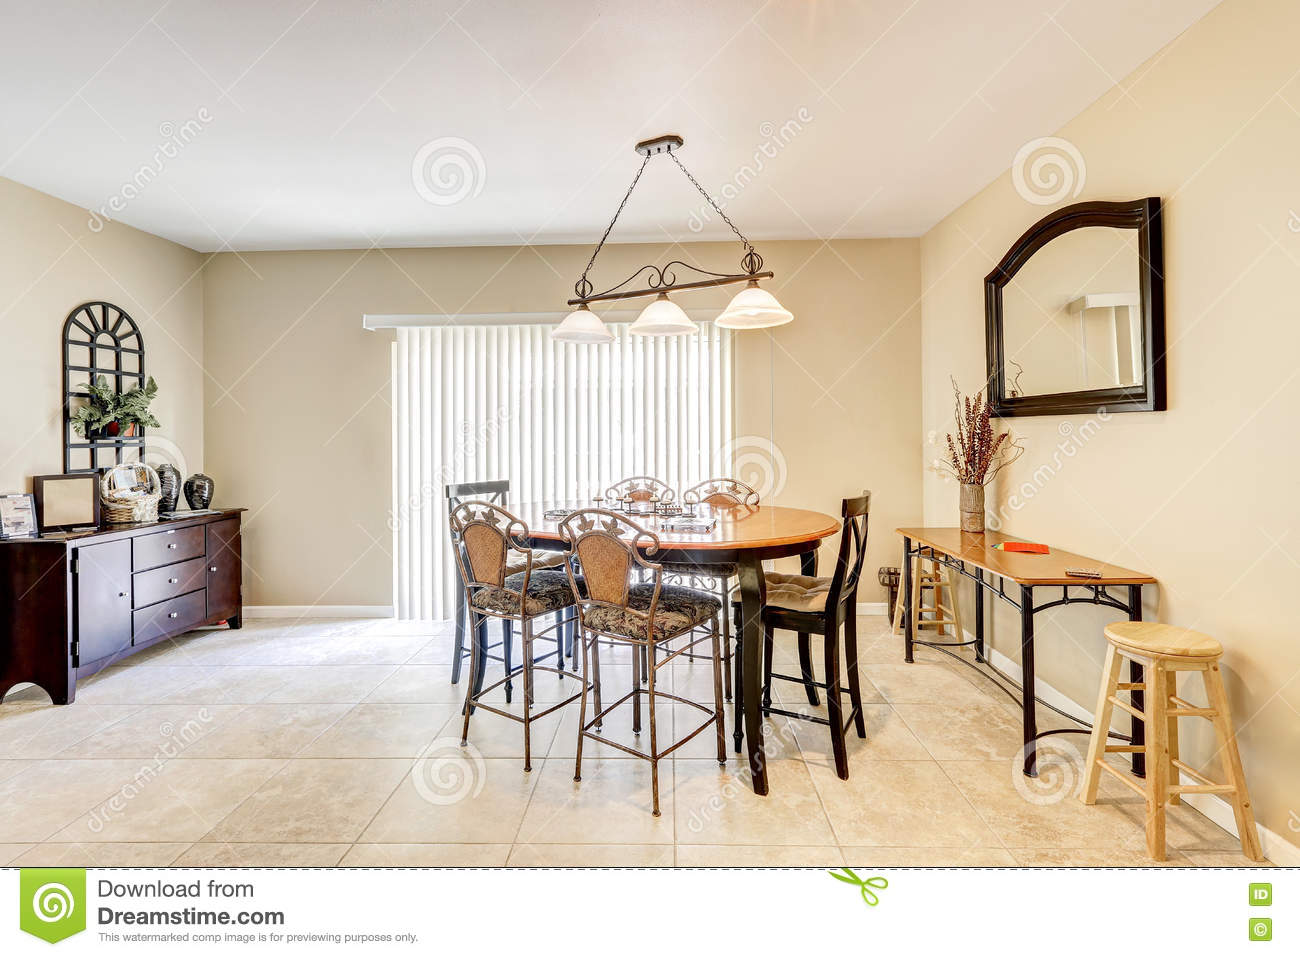 Bright And Light Dining Room With Bar Style Chairs Tile Floor